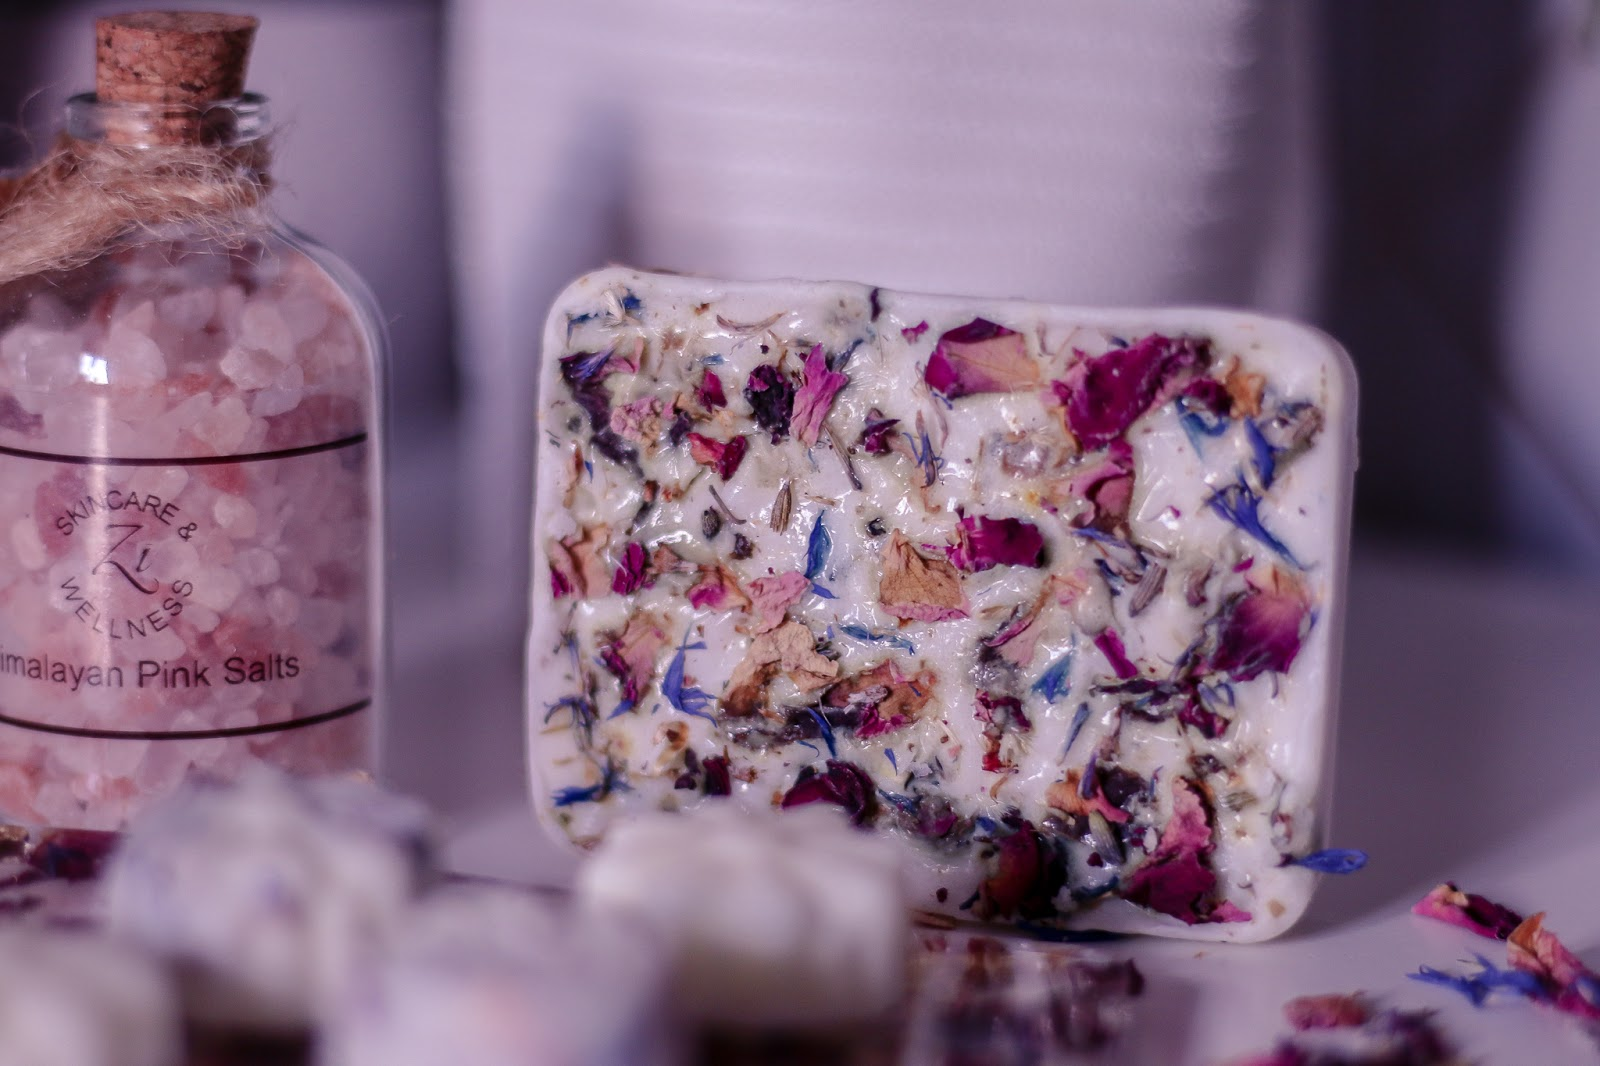 Close up of the white beauty bar with pink rose petals in it on a white bed side table